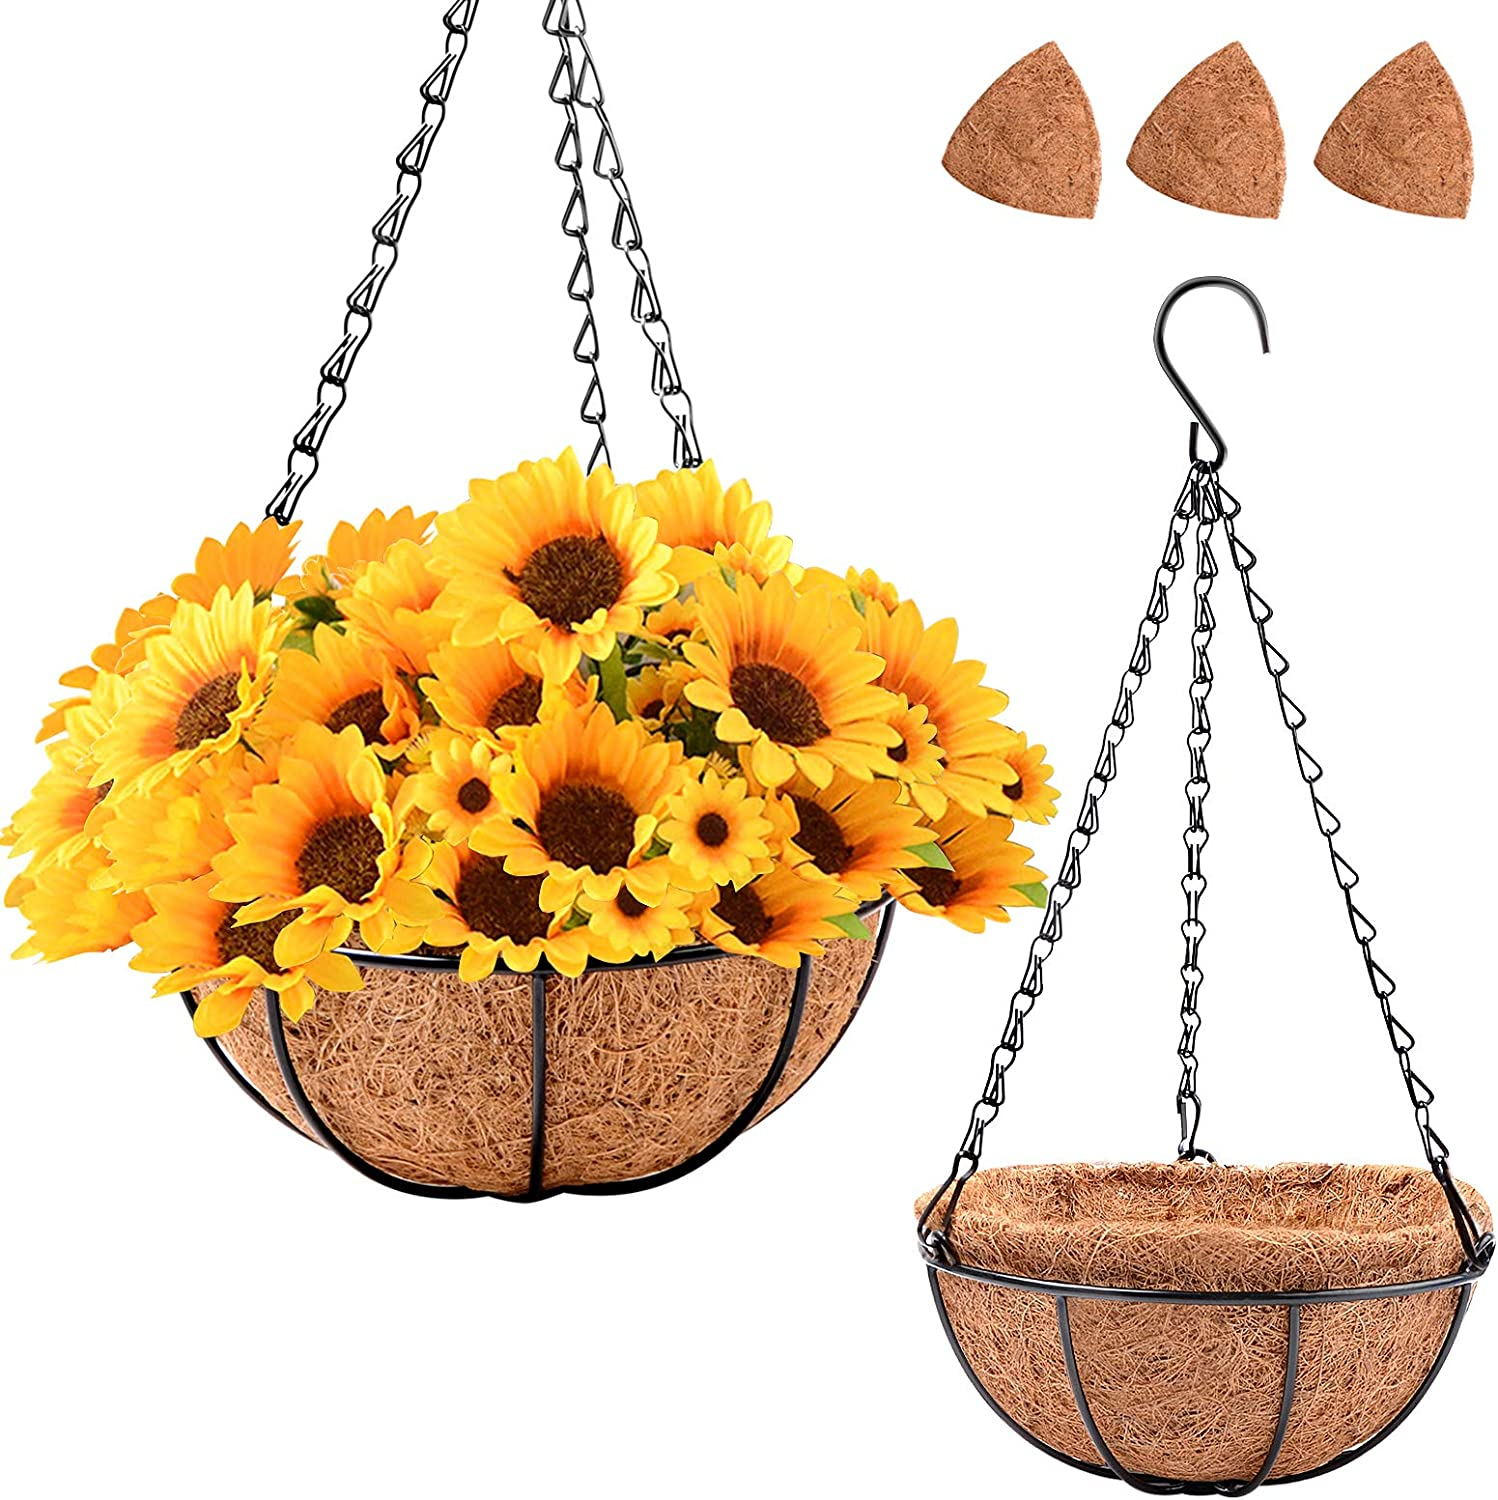 Hakkax Hanging Pot for Plants, Self Watering Hainging Planter 8 Inch, 4 Pack Metal Hanging Flower Basket with 7 Pieces of Coco Coir Liner for Outdoor Porch Balcony Garden Decoration